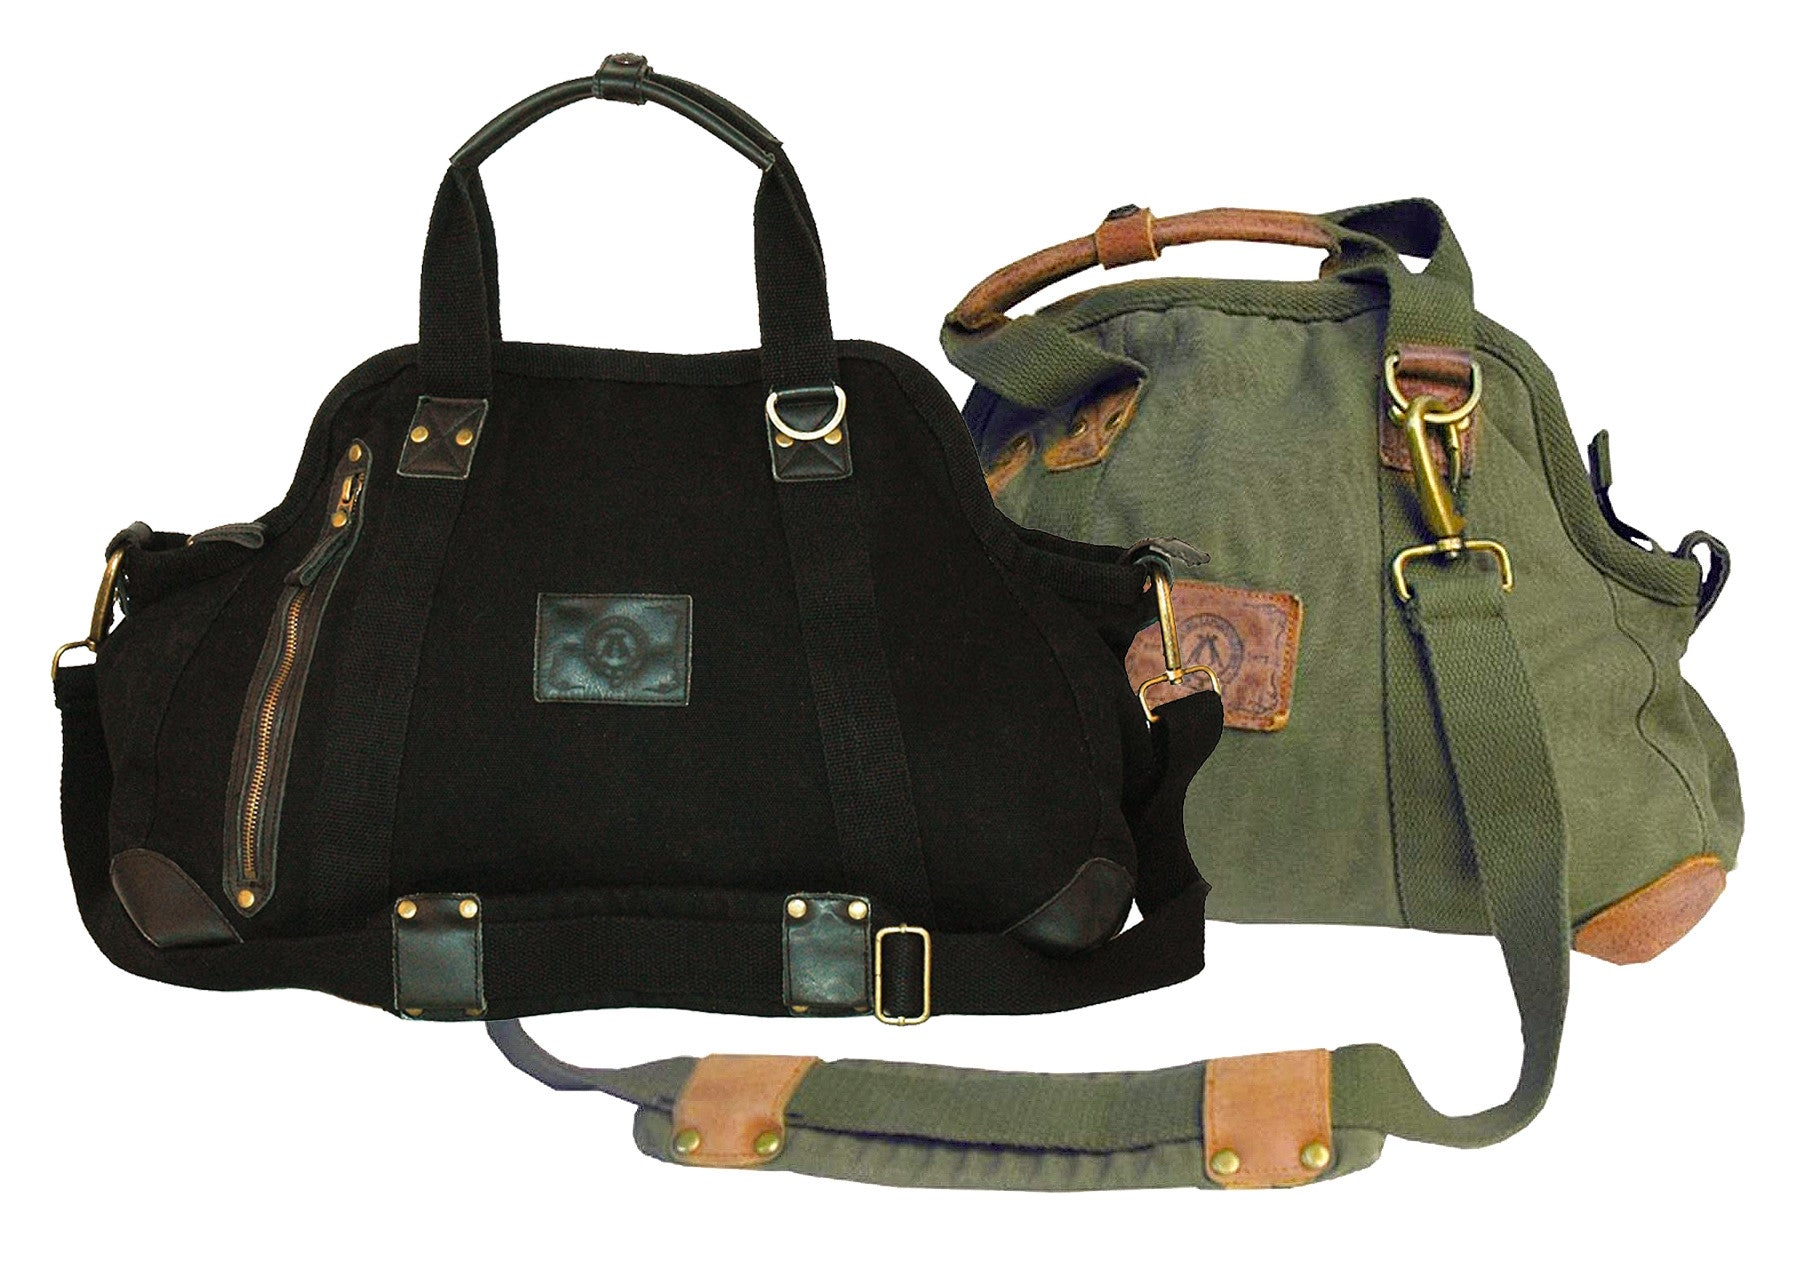 Capes | Small Doctors Canvas shoulder bag with removable shoulder strap - OUT OF AUSTRALIA | Kakadu Traders Australia